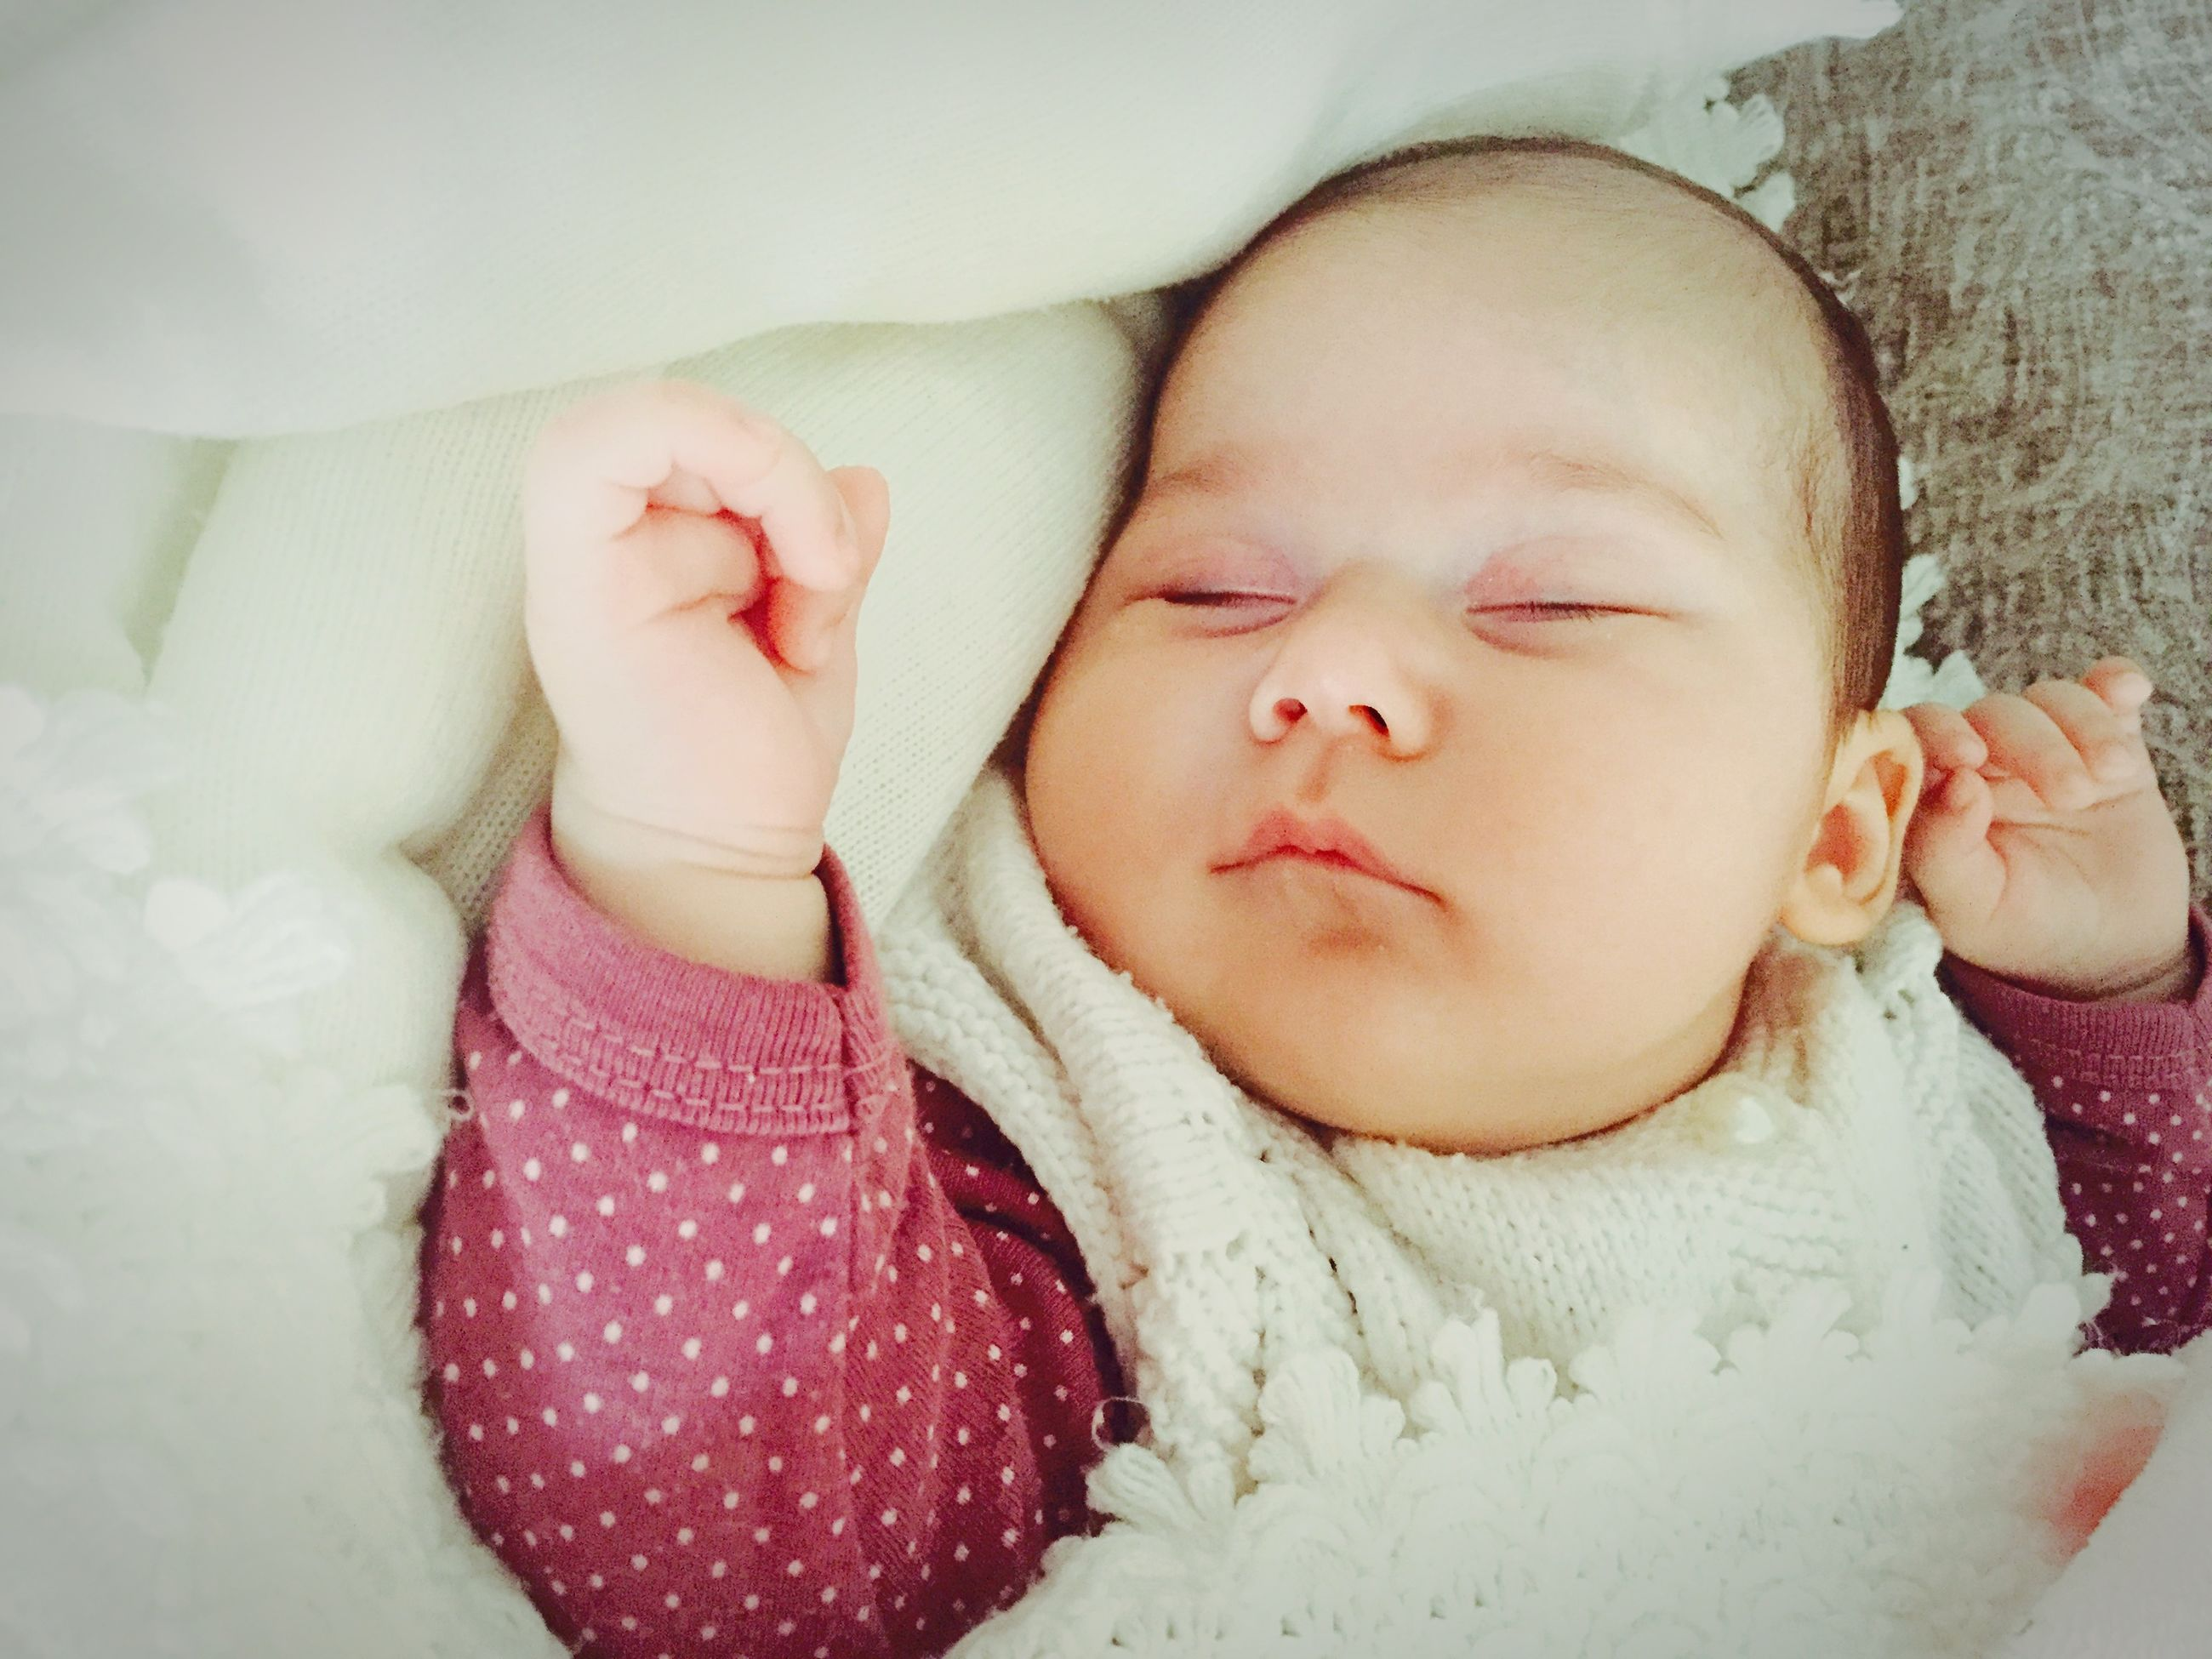 childhood, innocence, cute, baby, person, lifestyles, relaxation, babyhood, elementary age, leisure activity, toddler, girls, lying down, bed, sleeping, eyes closed, indoors, unknown gender